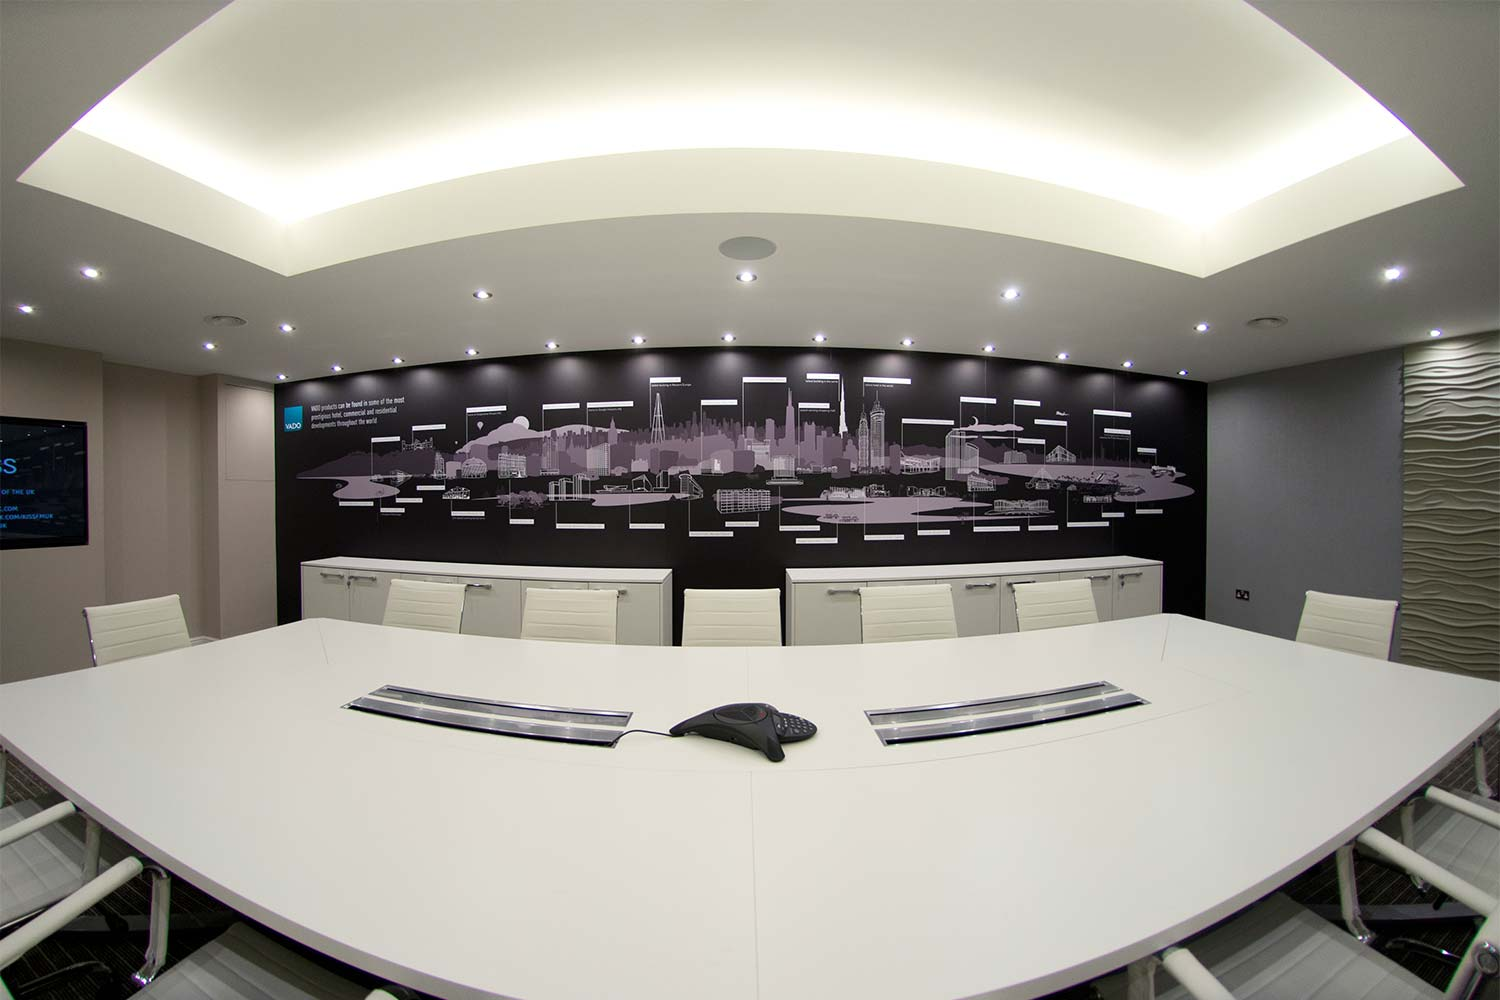 On location, new meeting room, photographed with a fisheye lens.